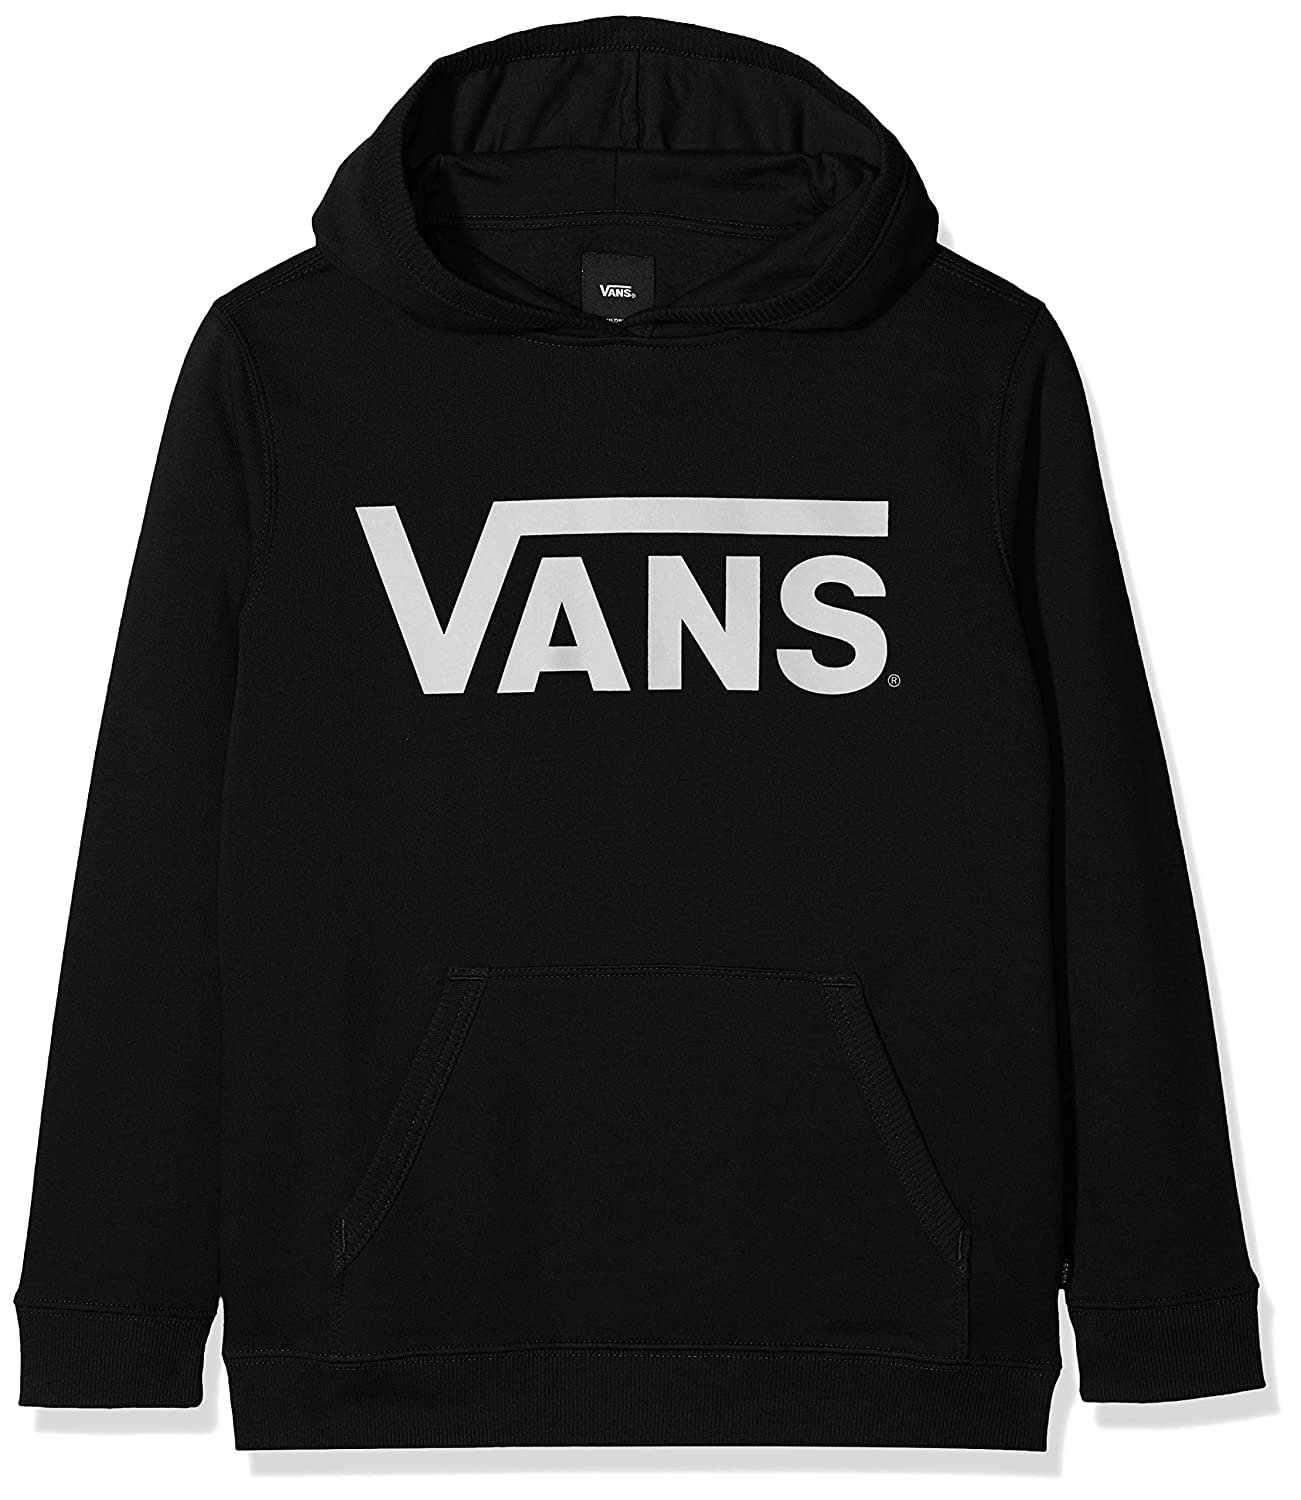 be01ba398 Vans Boy s Classic Pullover Hoodie  Amazon.co.uk  Clothing